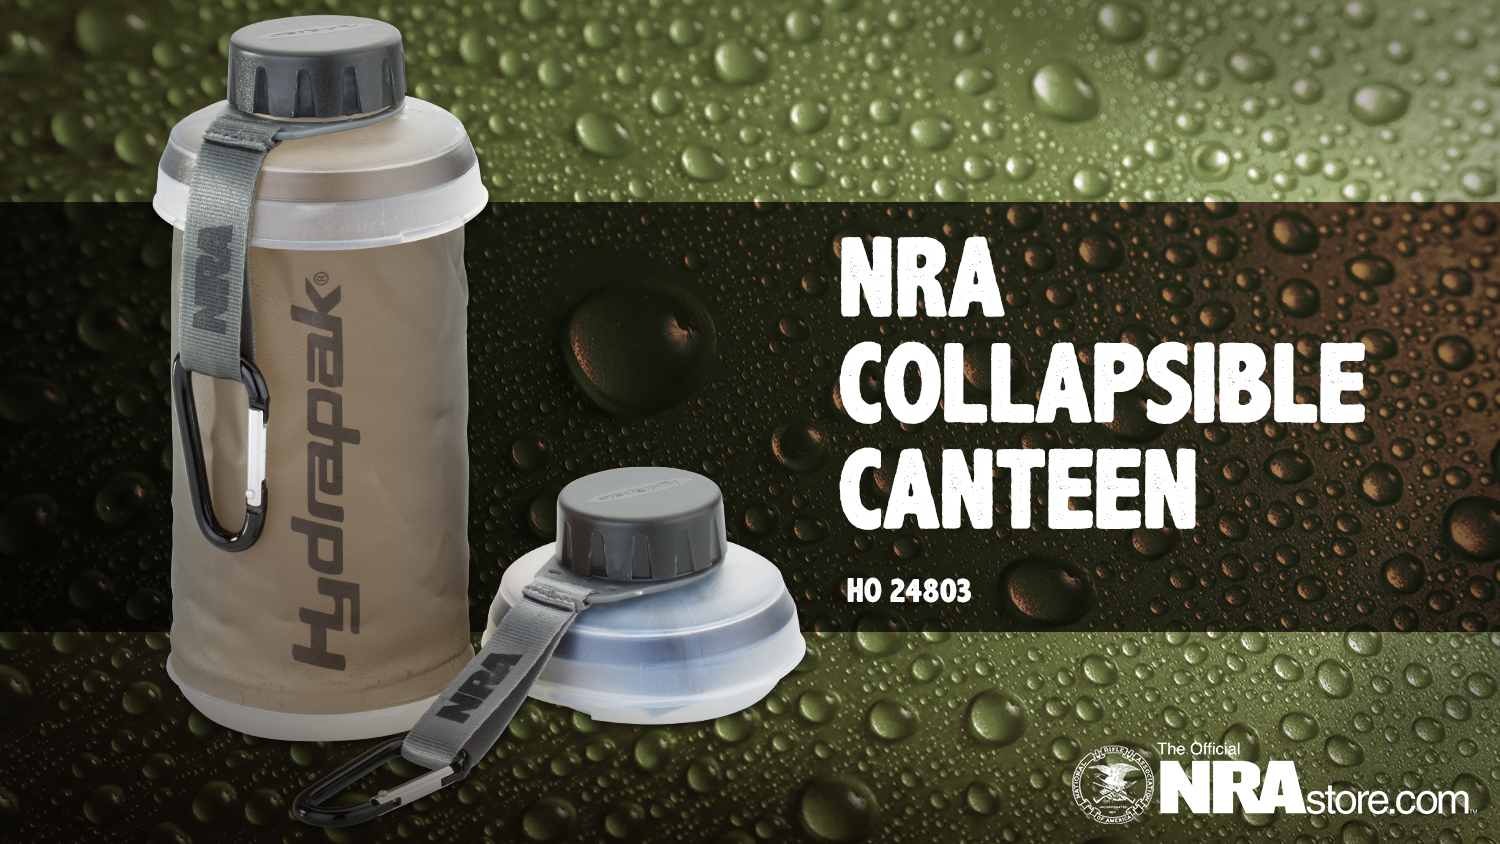 NRA Store Product Highlight: Collapsible Canteen